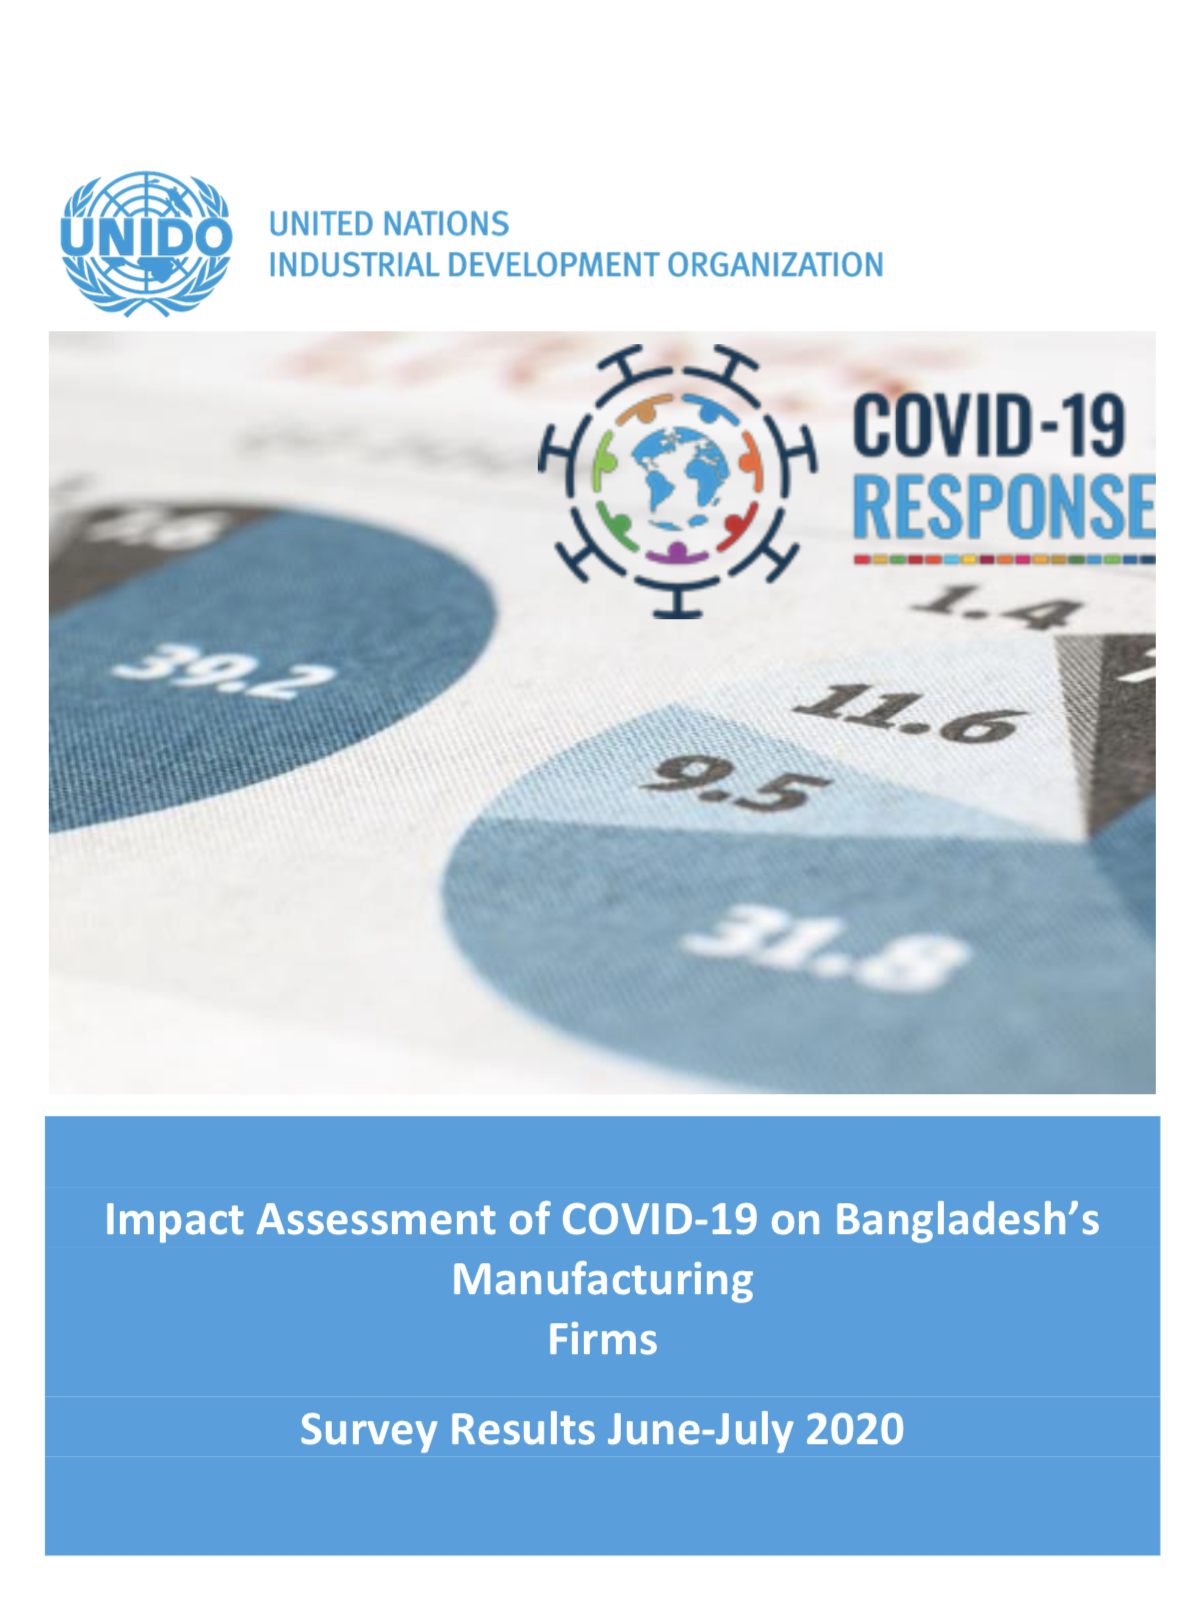 Impact Assessment of COVID-19 on Bangladesh's Manufacturing Firms Survey Results June-July 2020